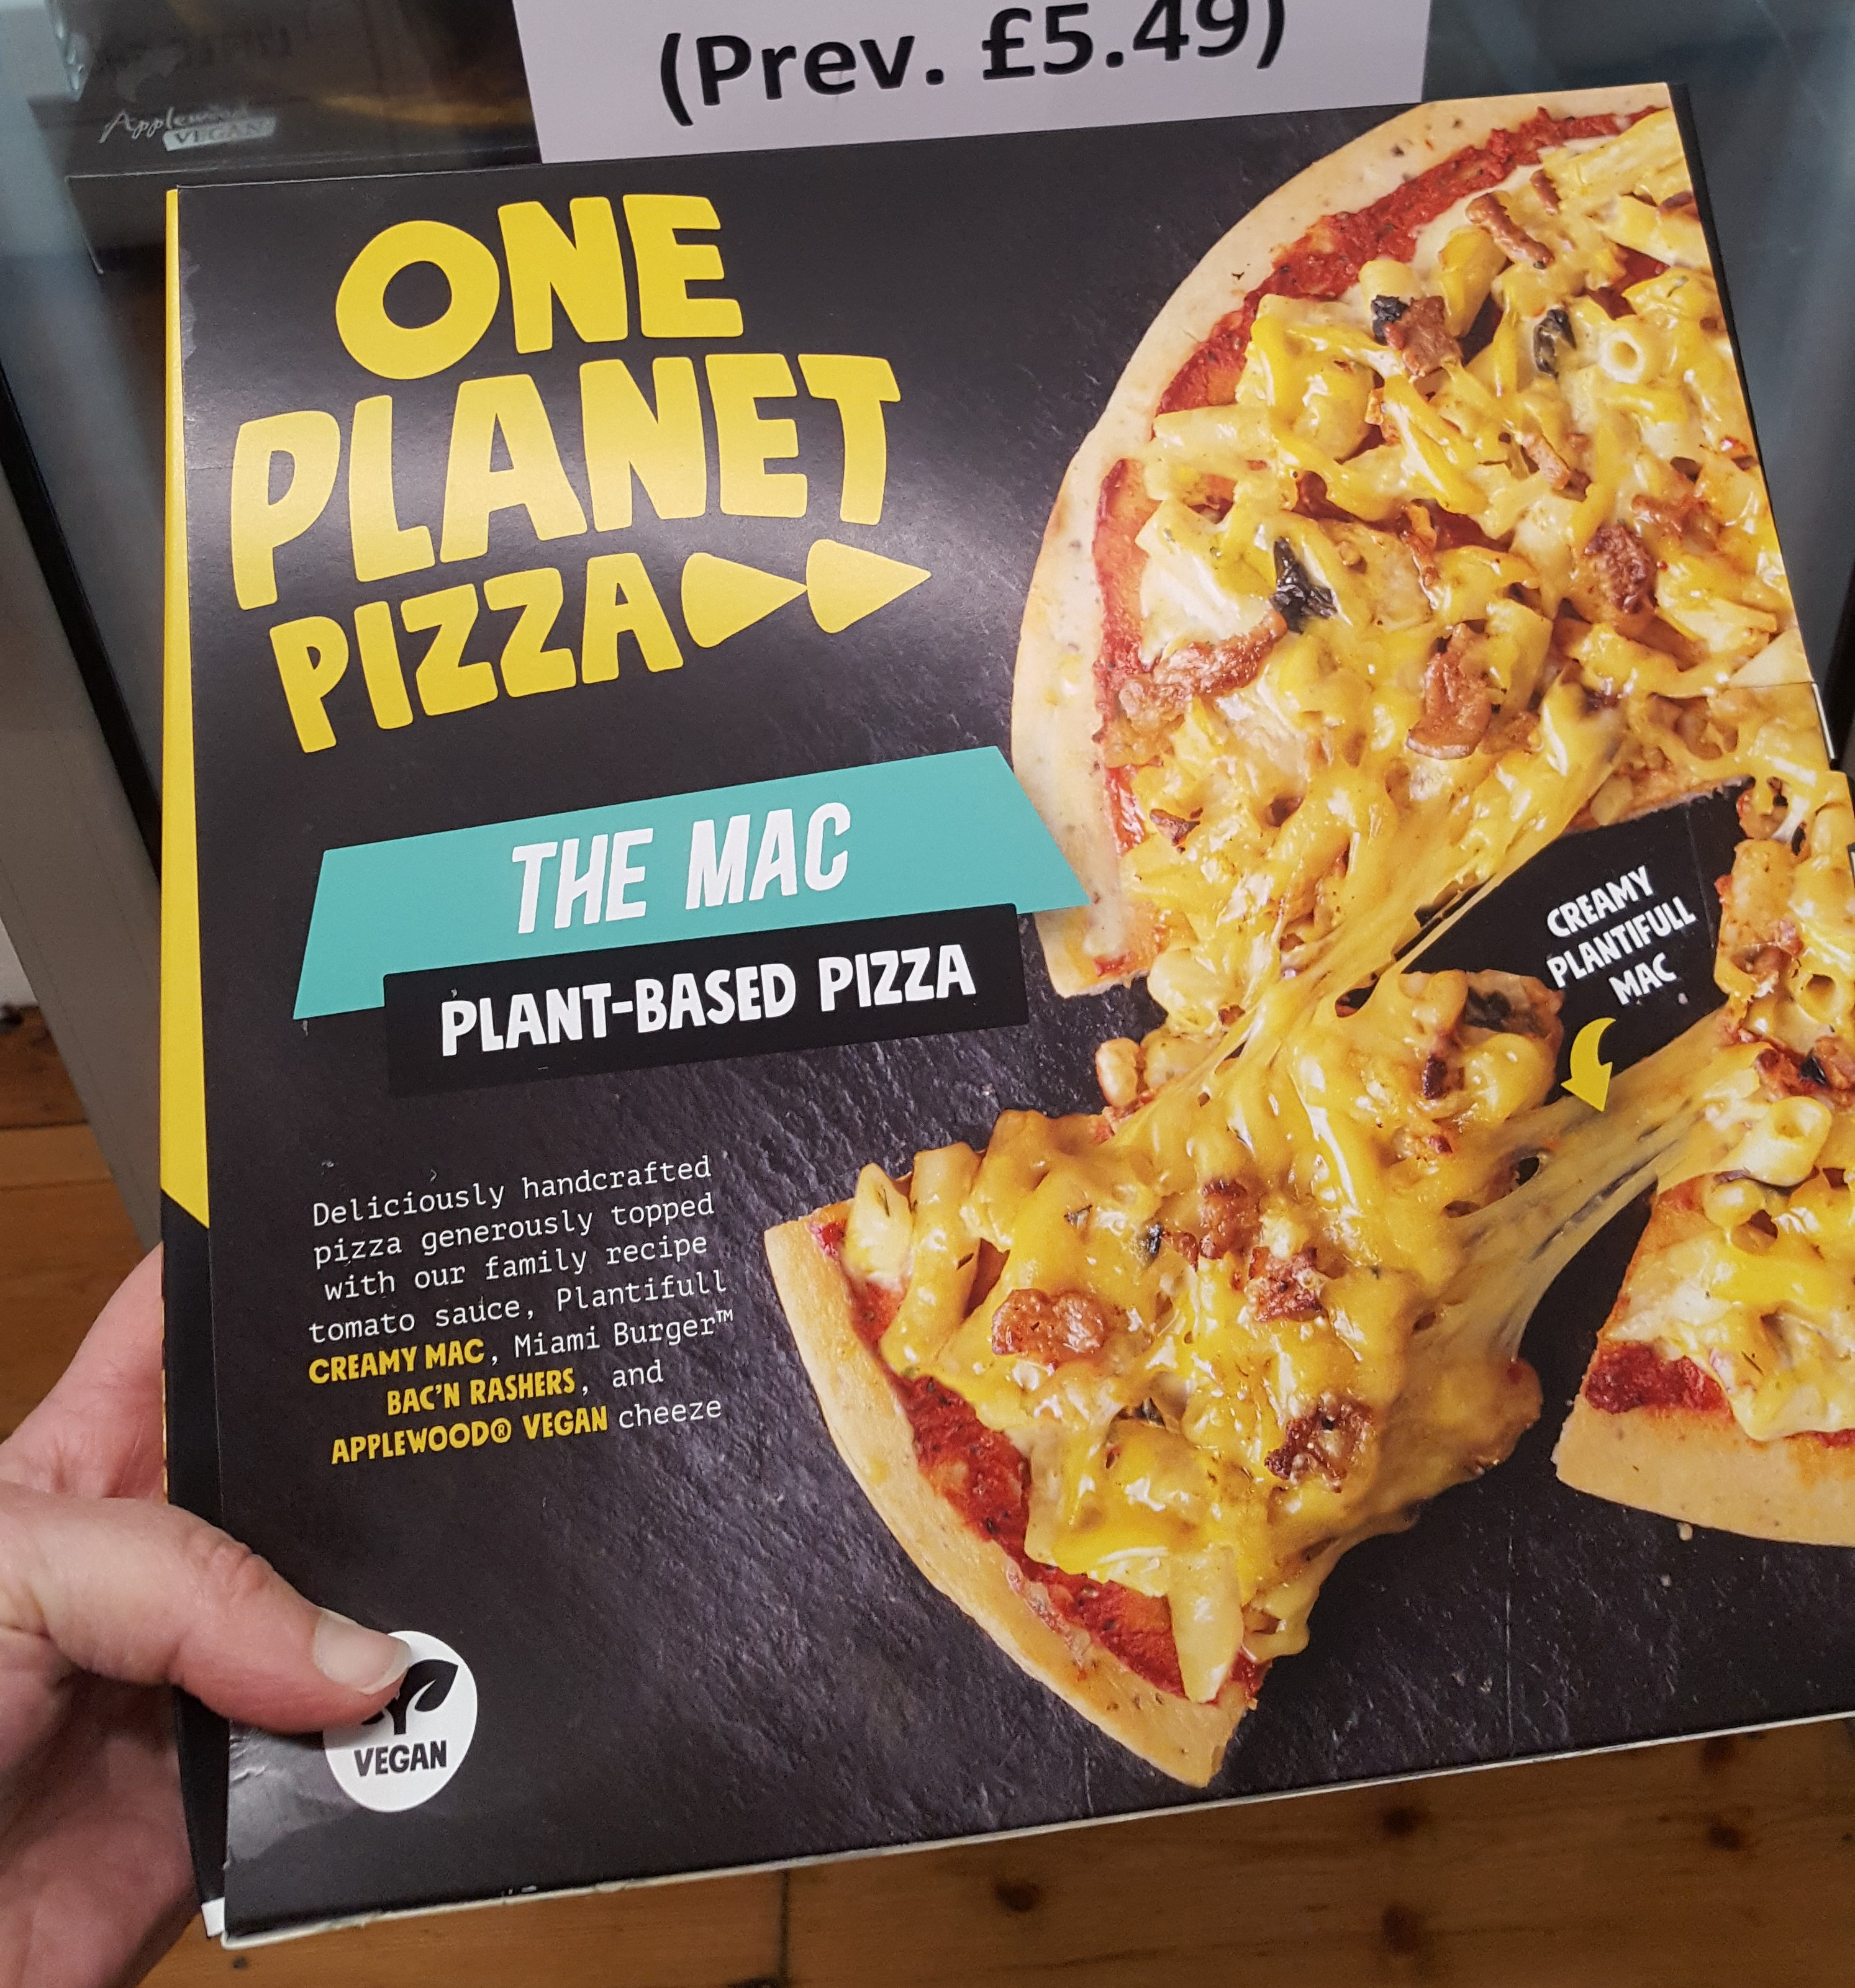 One Planet Pizza - 50% OFF!!! The Mac (Was £5.49)